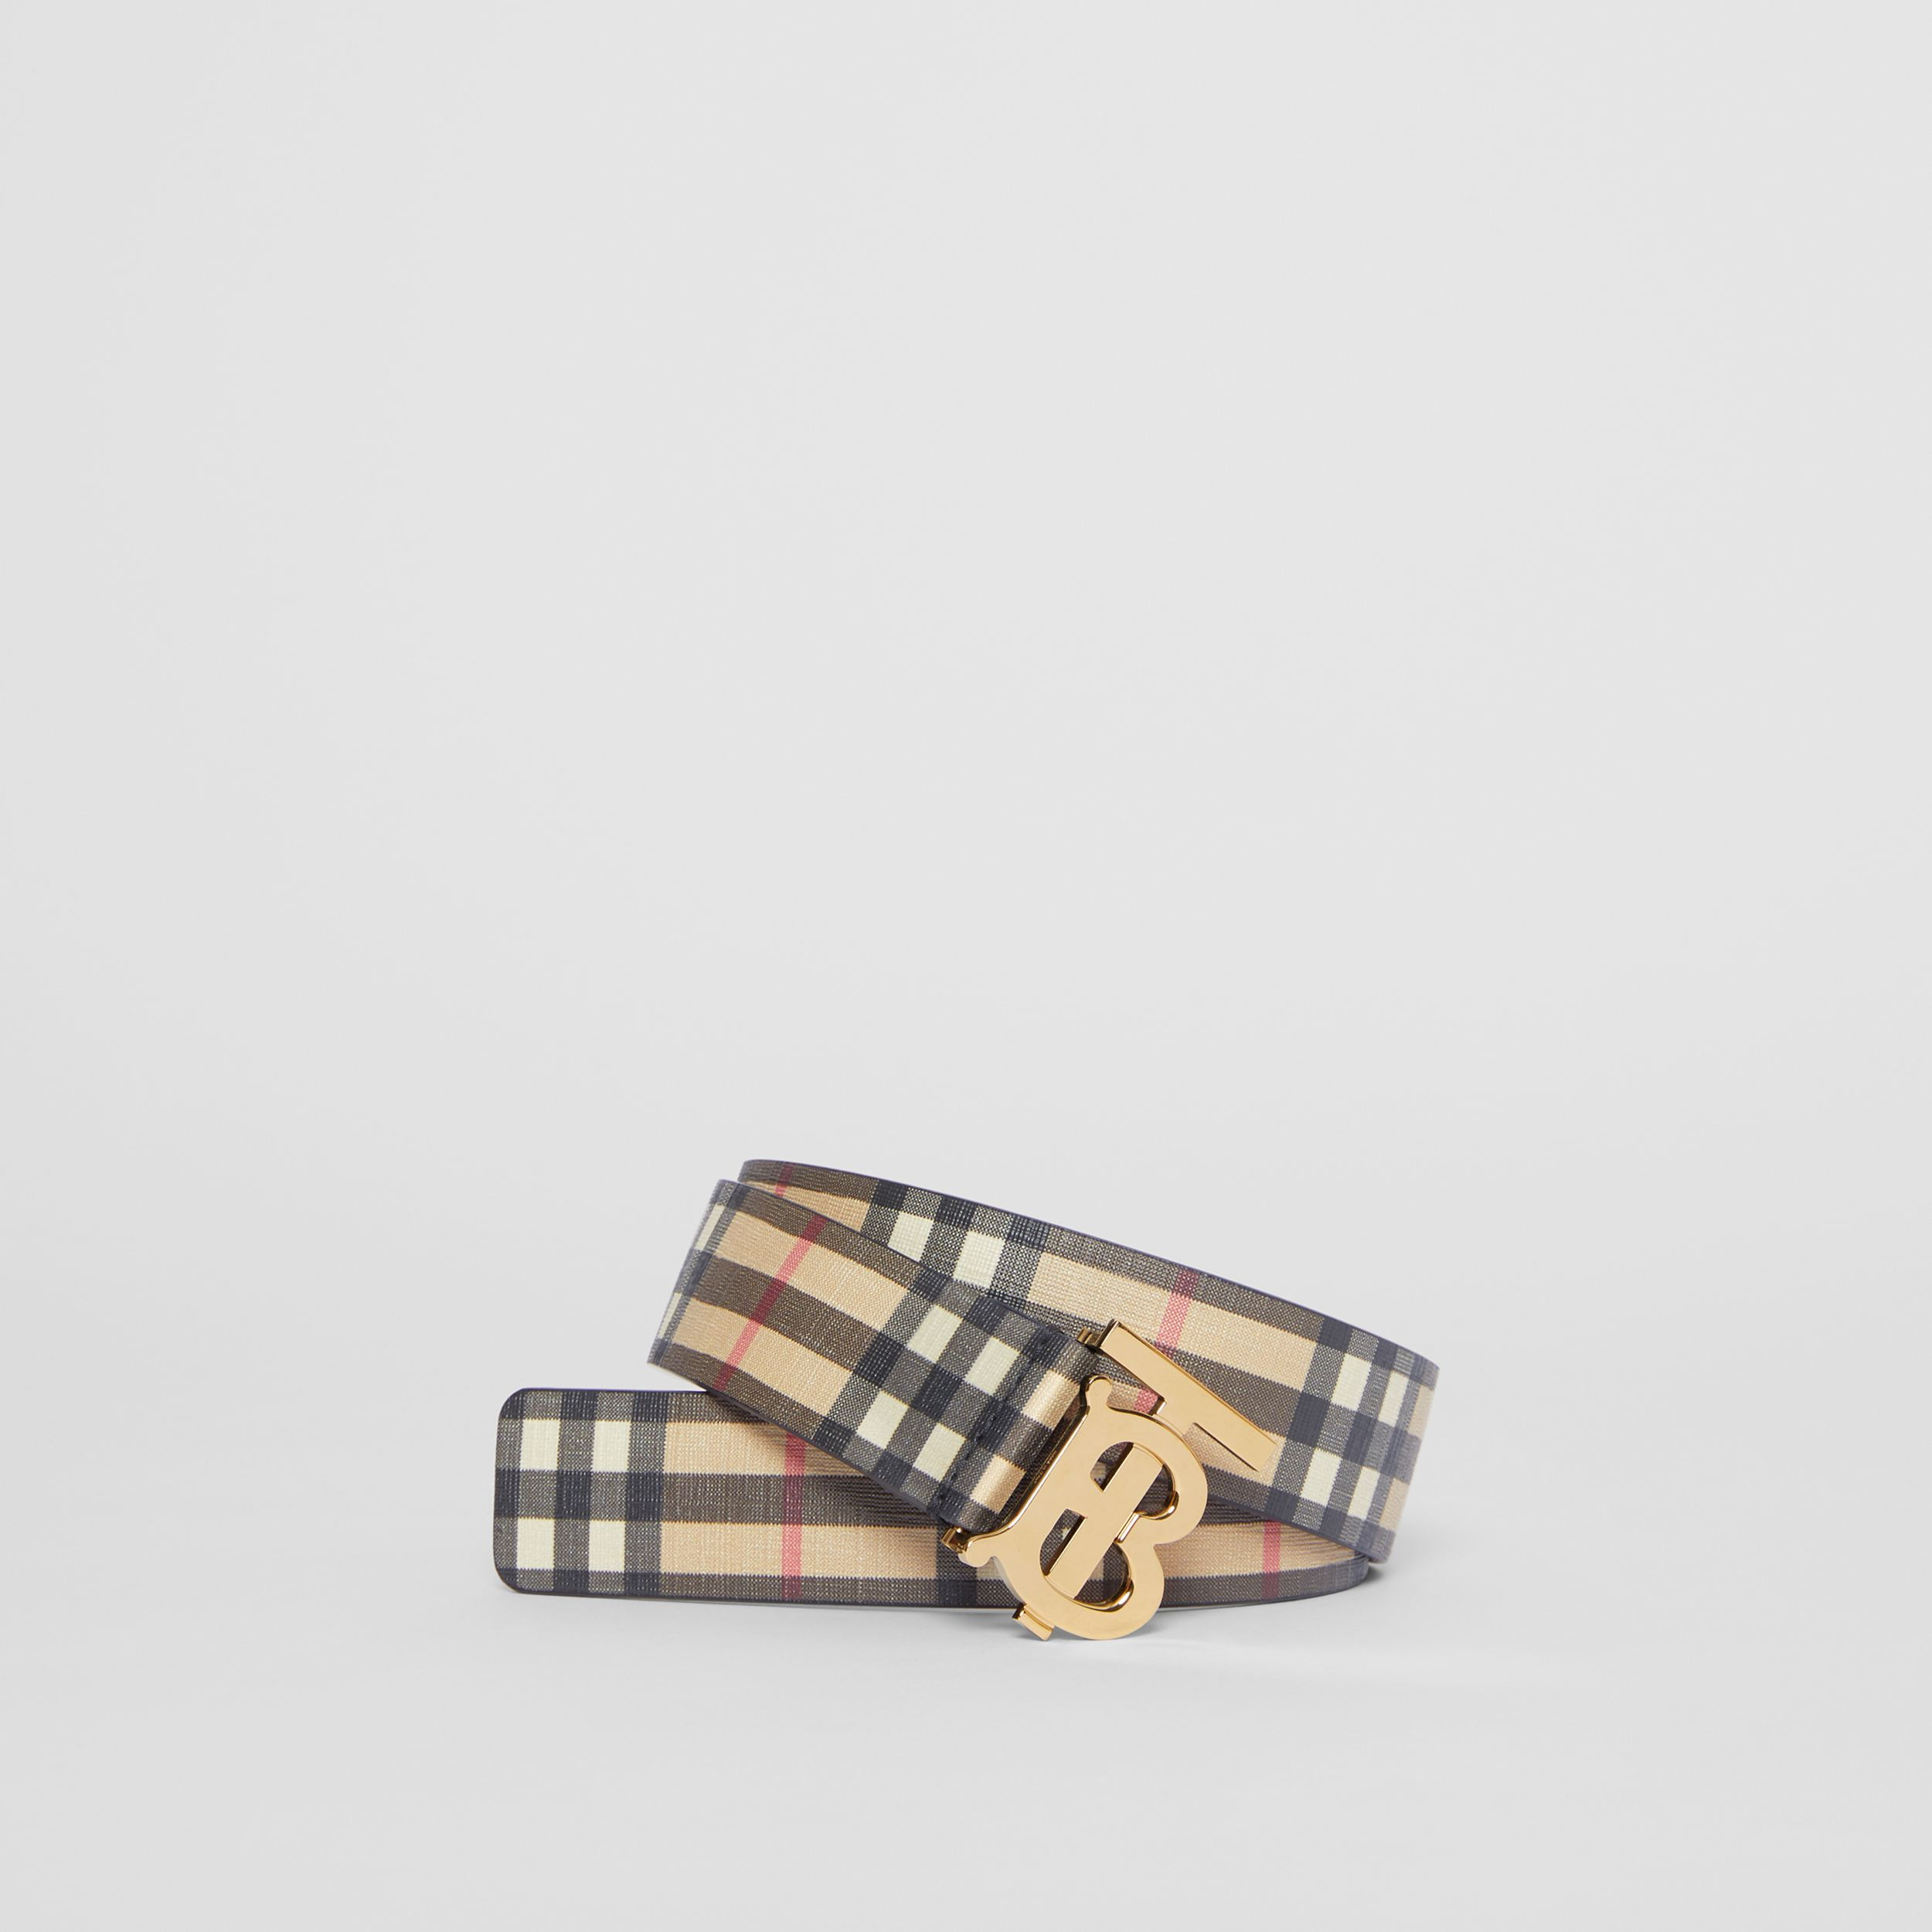 Monogram Motif Vintage Check E-canvas Belt in Archive Beige - Women | Burberry - 1